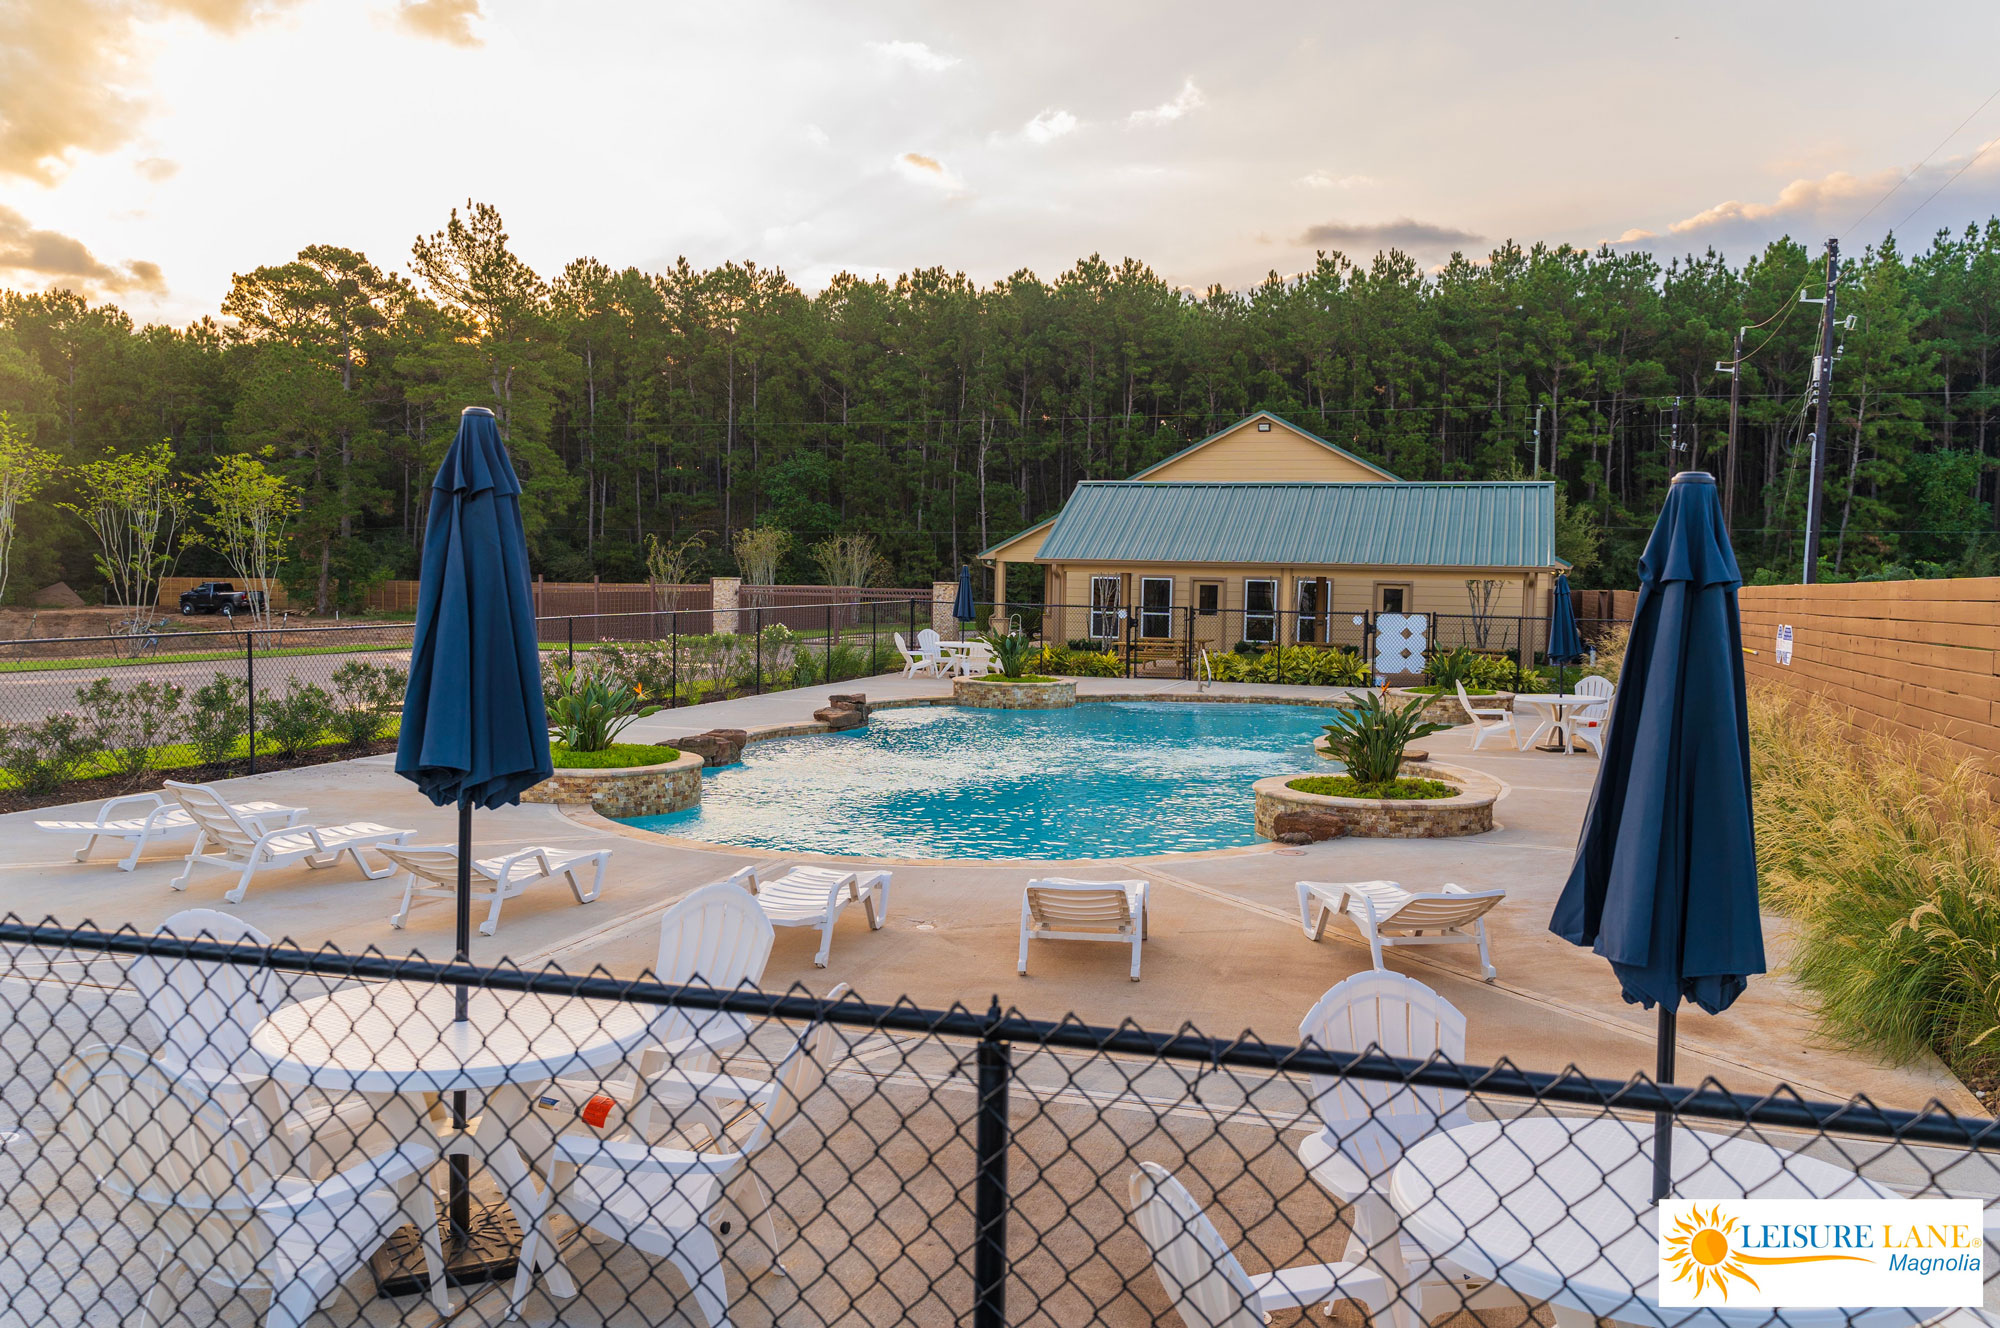 Leisure-Lane-Magnolia-RV-Park-Pool-Lounge